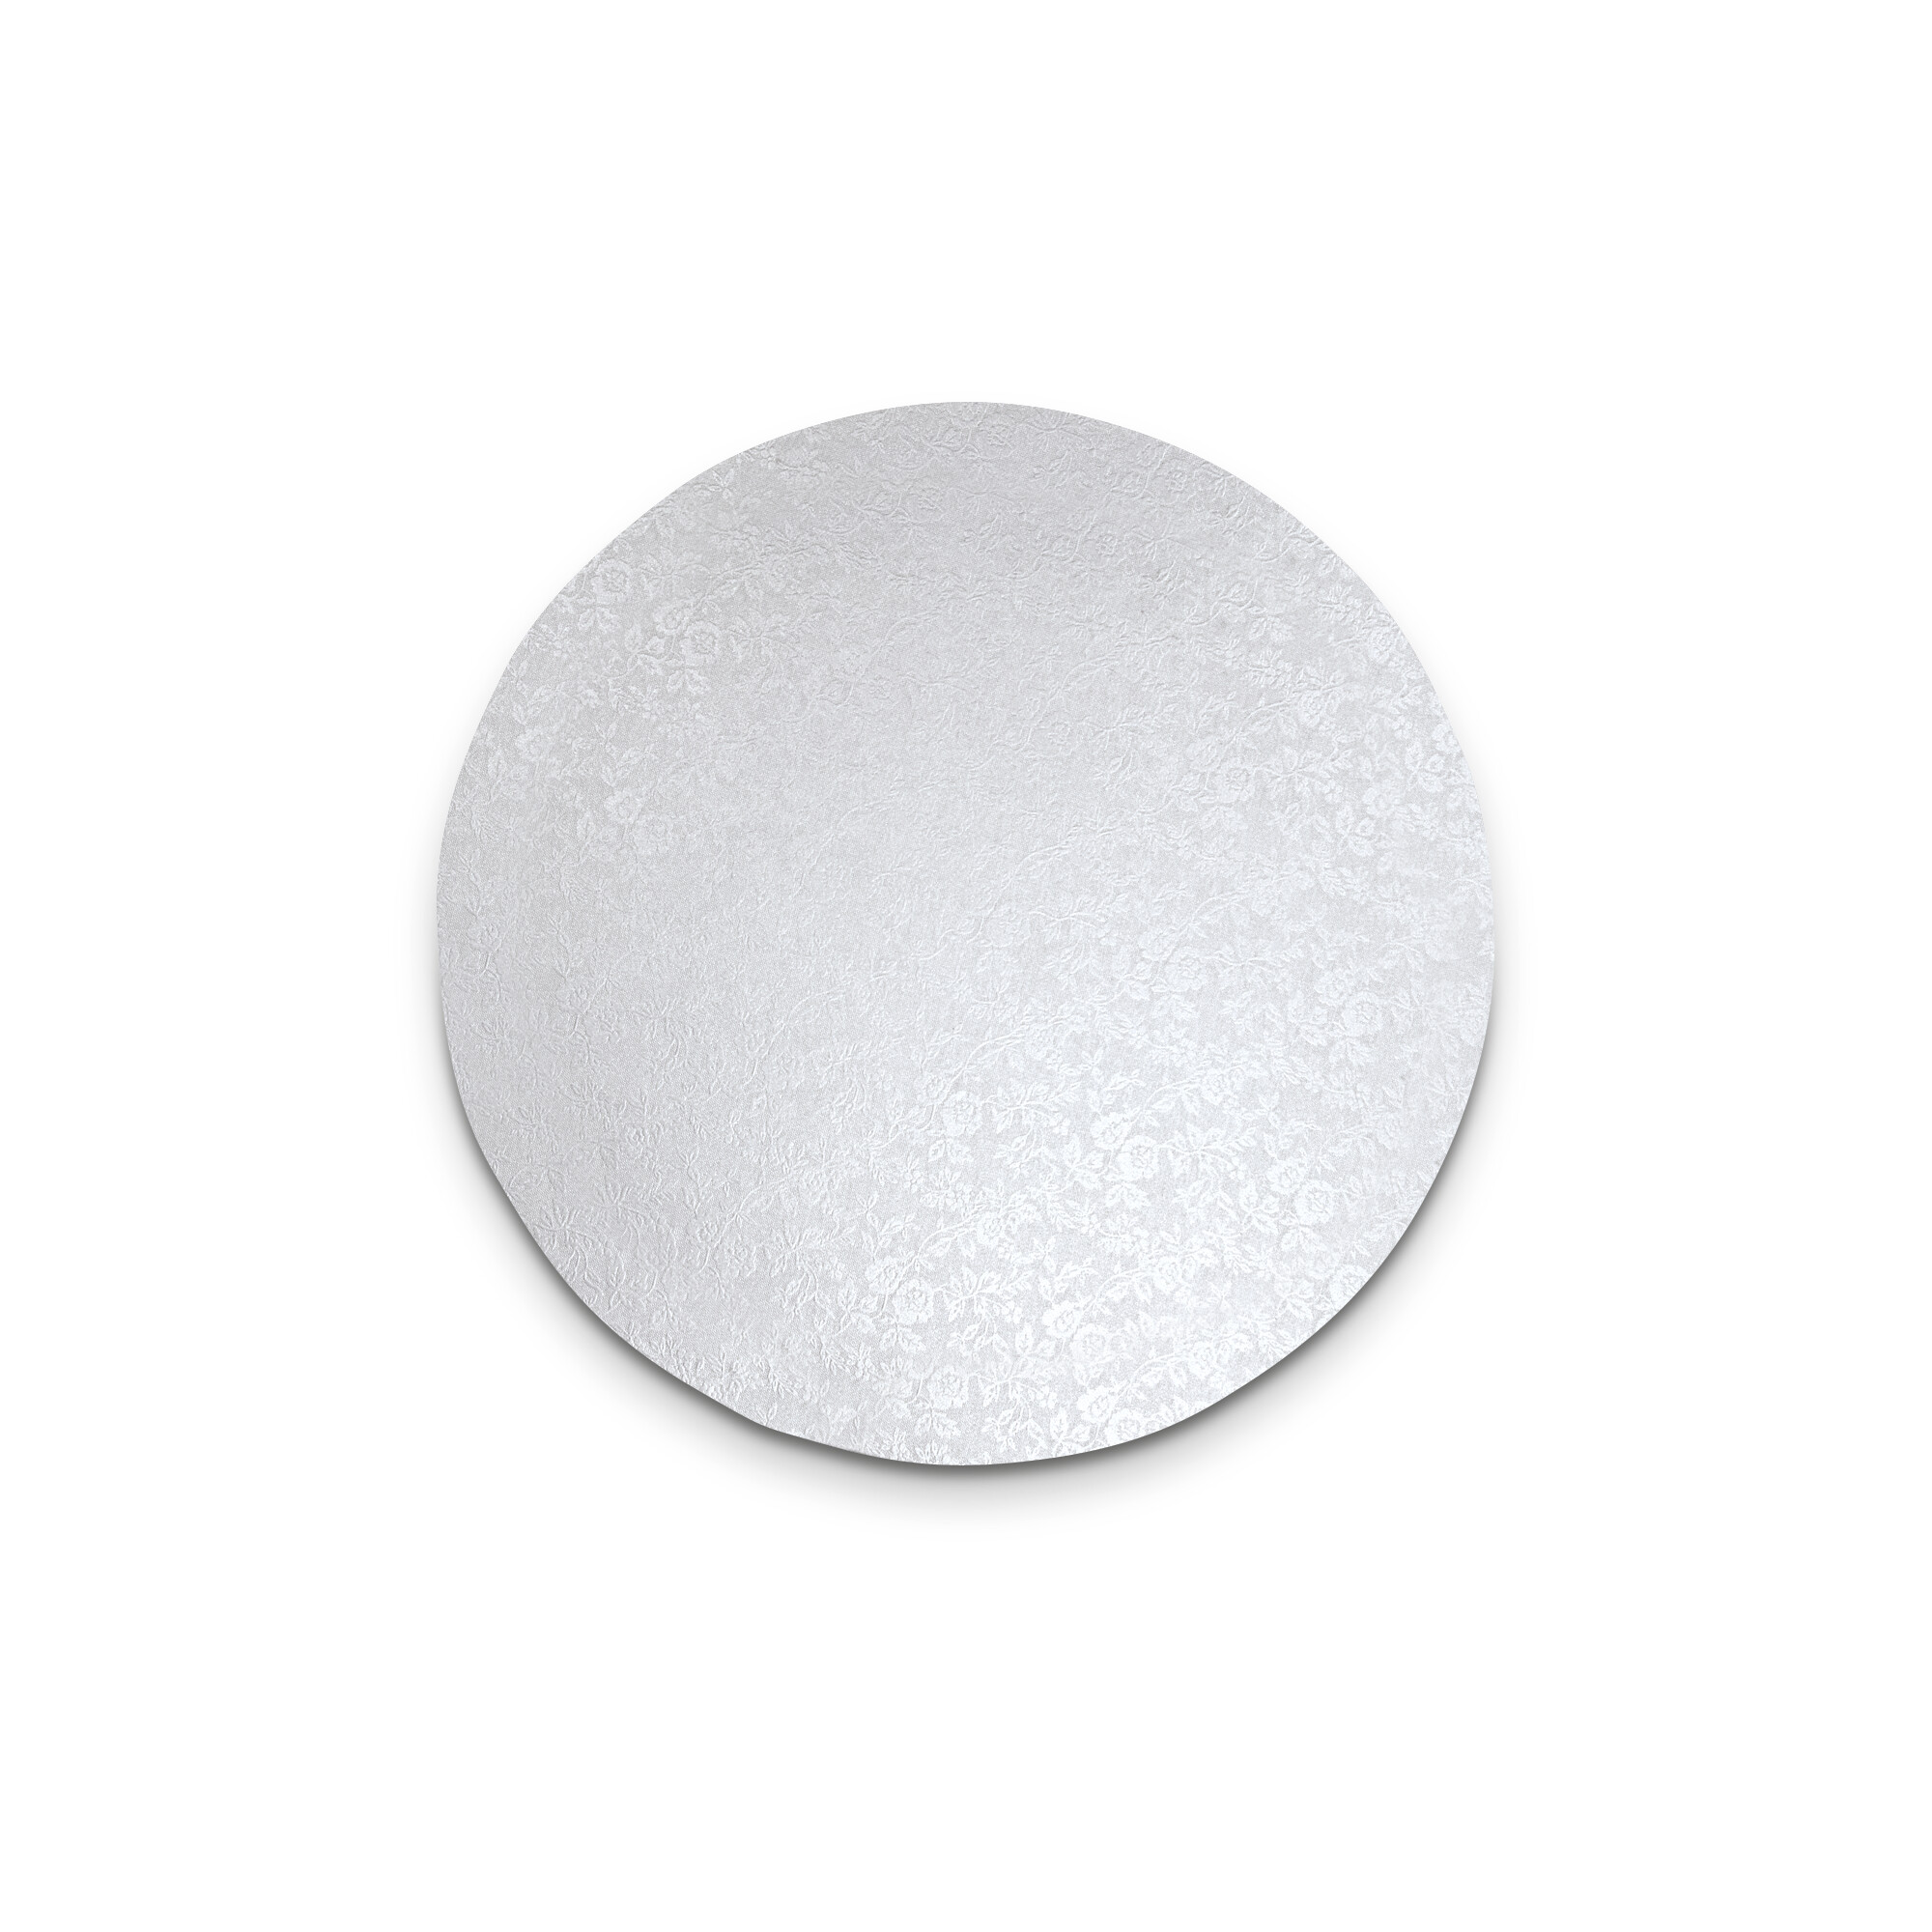 Cake board - Round - extra strong